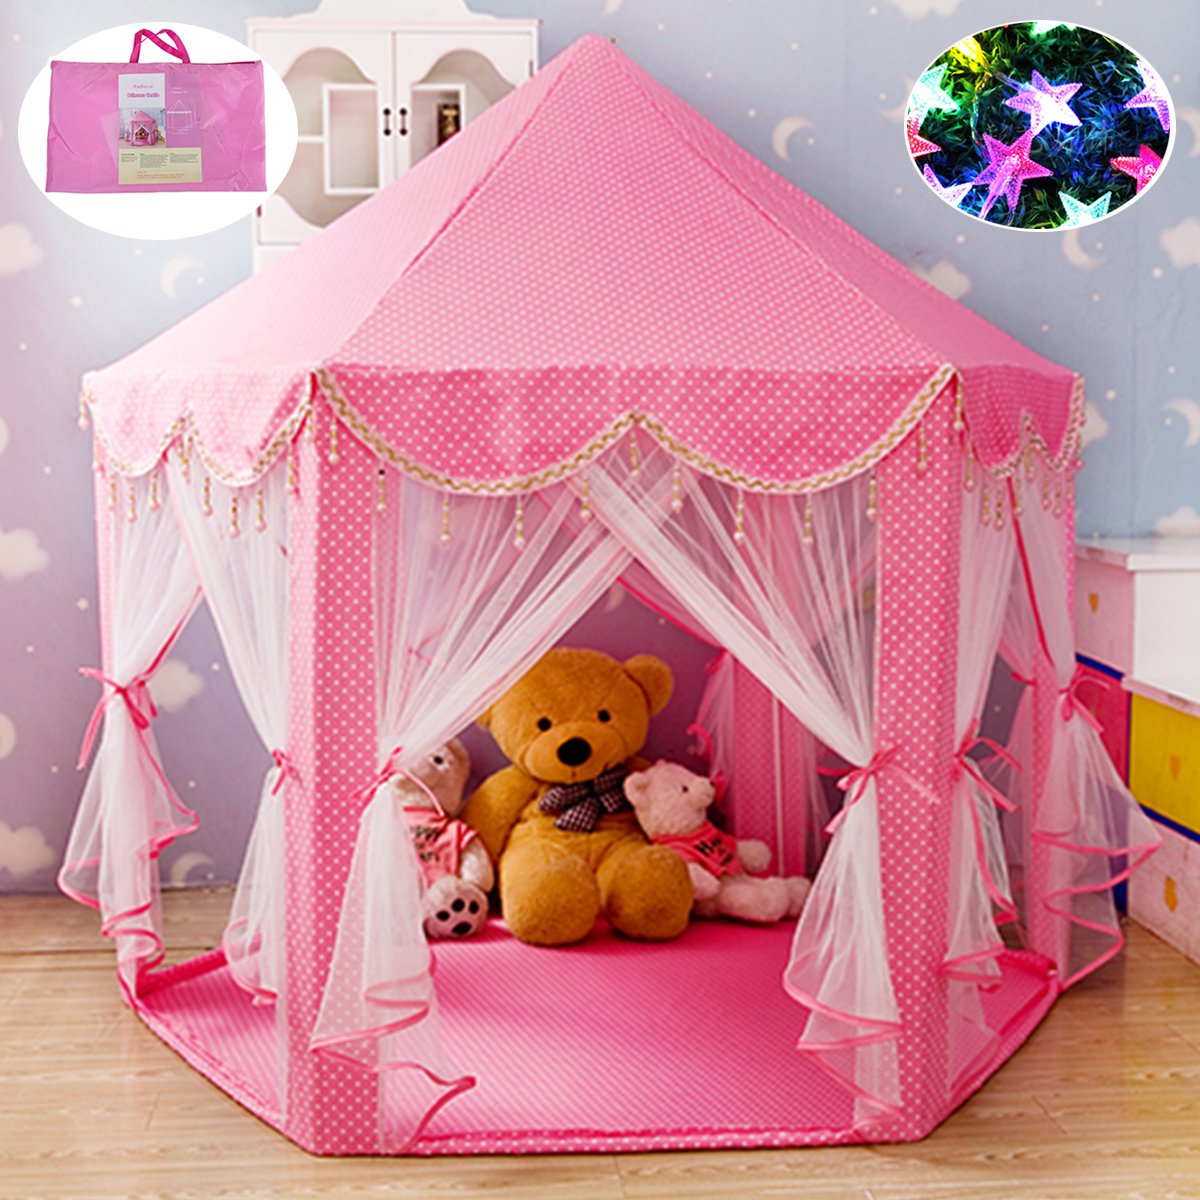 Aubeco Extra Thick Fabric Pink Hexagon Princess Castle with Beading Decoration Cute Indoor Kids Play Tent Outdoor Girls Playhouse with 23ft LED Star String Lights 55 Diameter 53 Height